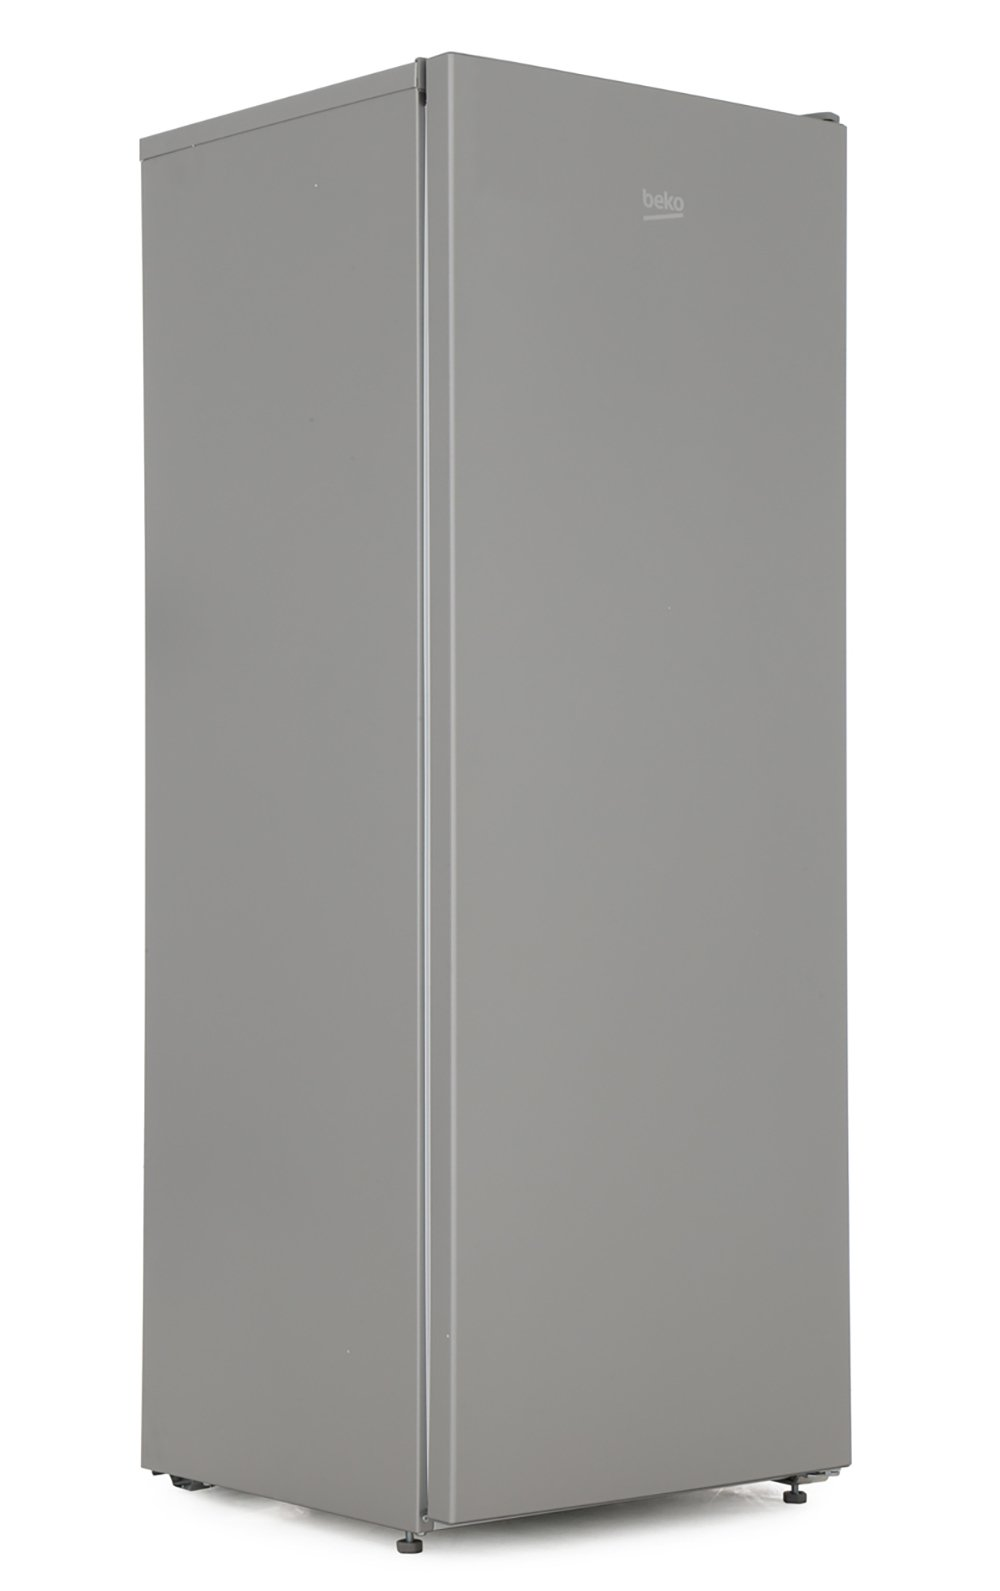 Beko LSG1545S Tall Larder Fridge